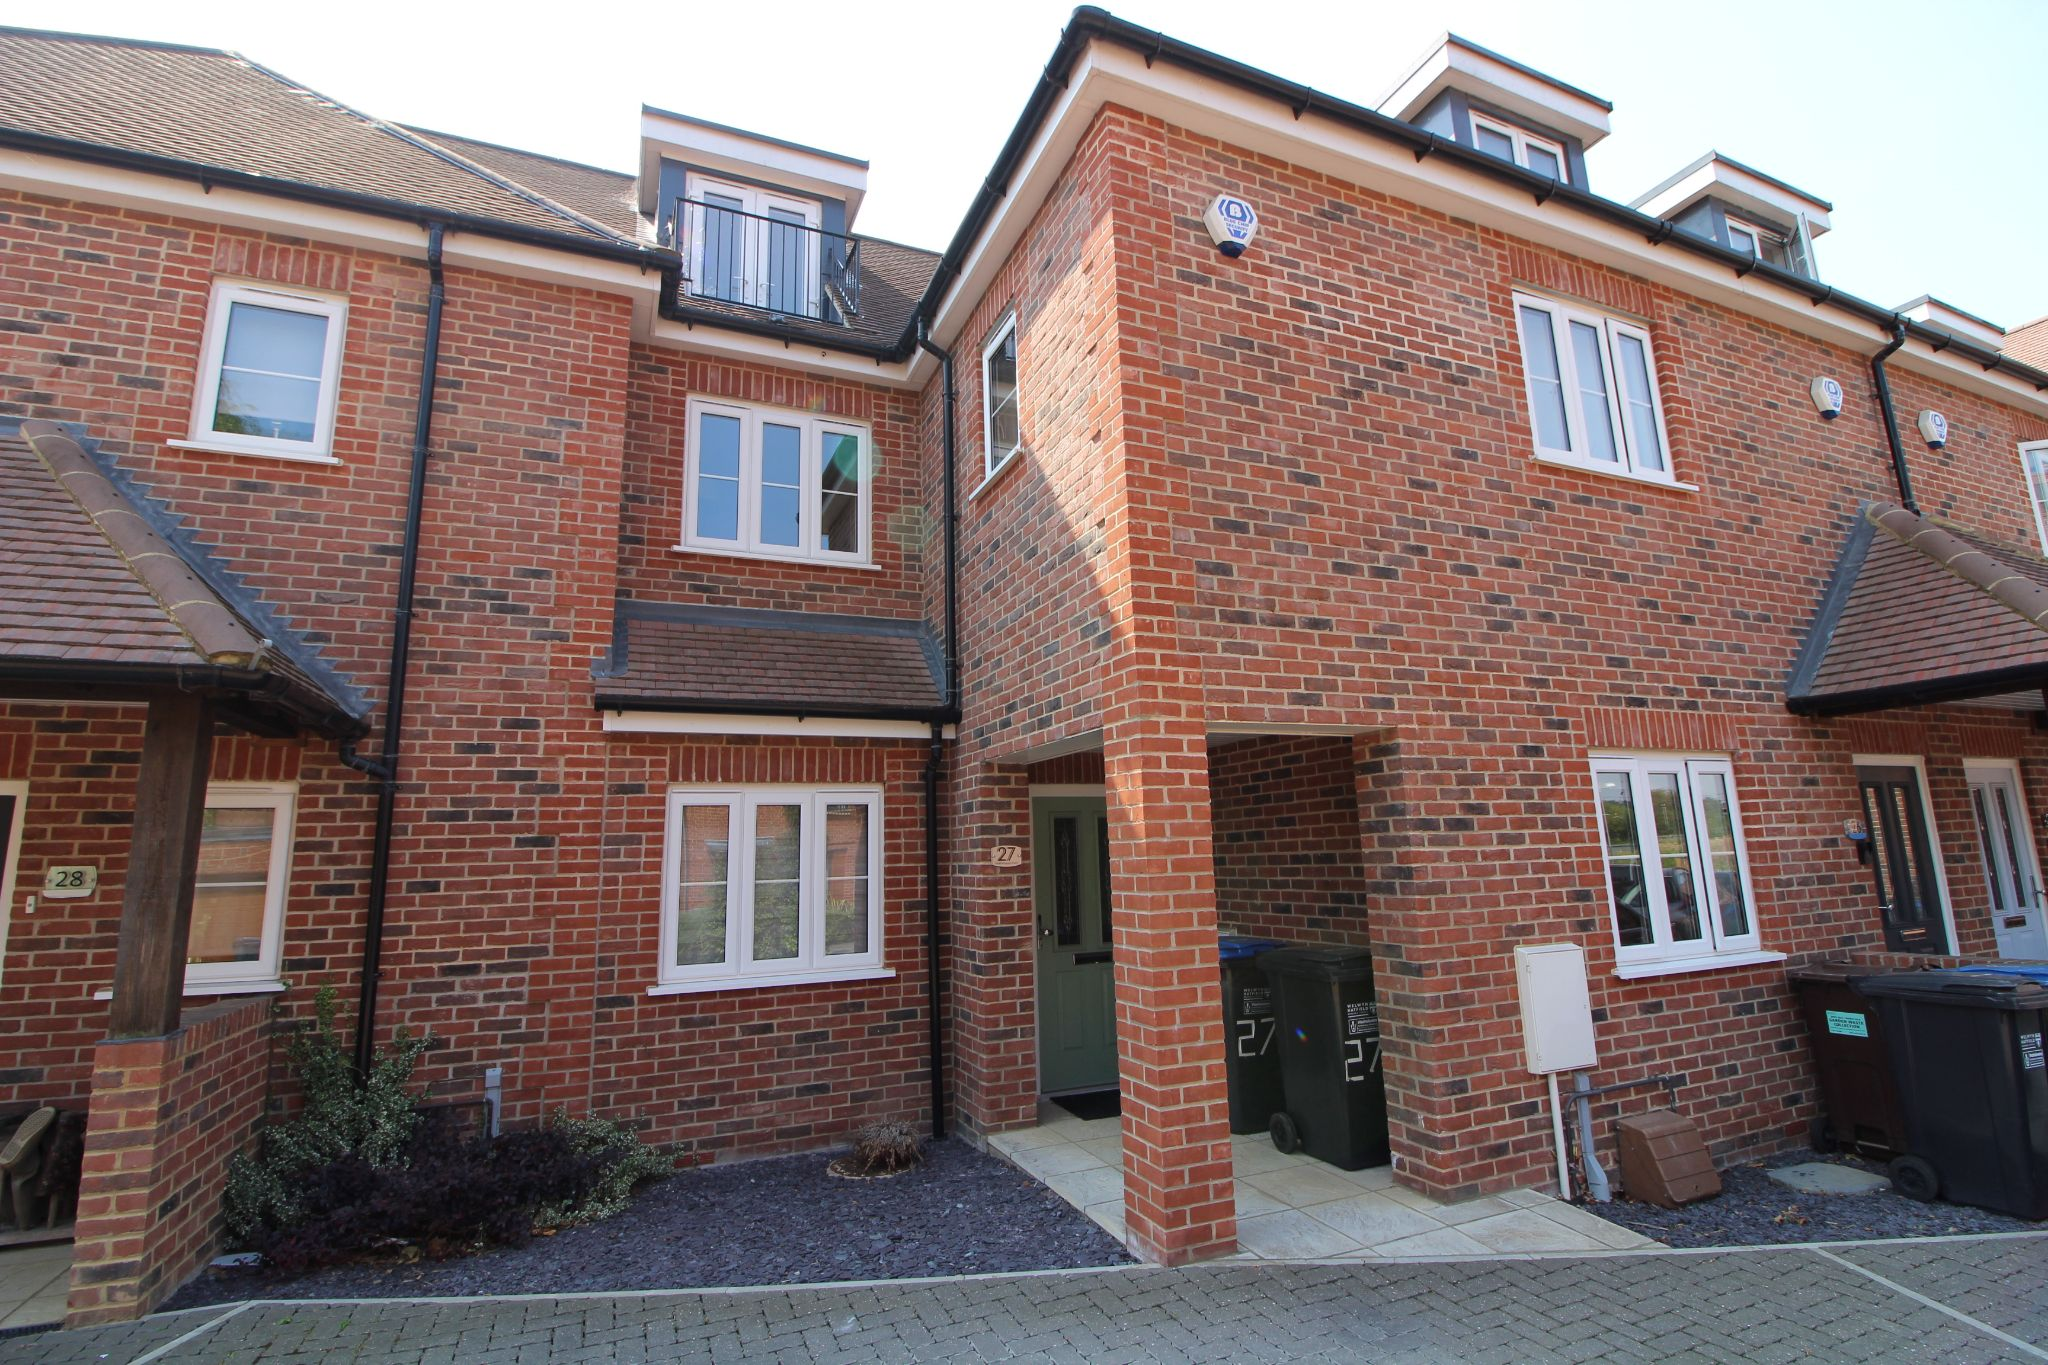 3 bedroom mid terraced house Sale Agreed in Brookmans Park - Photograph 1